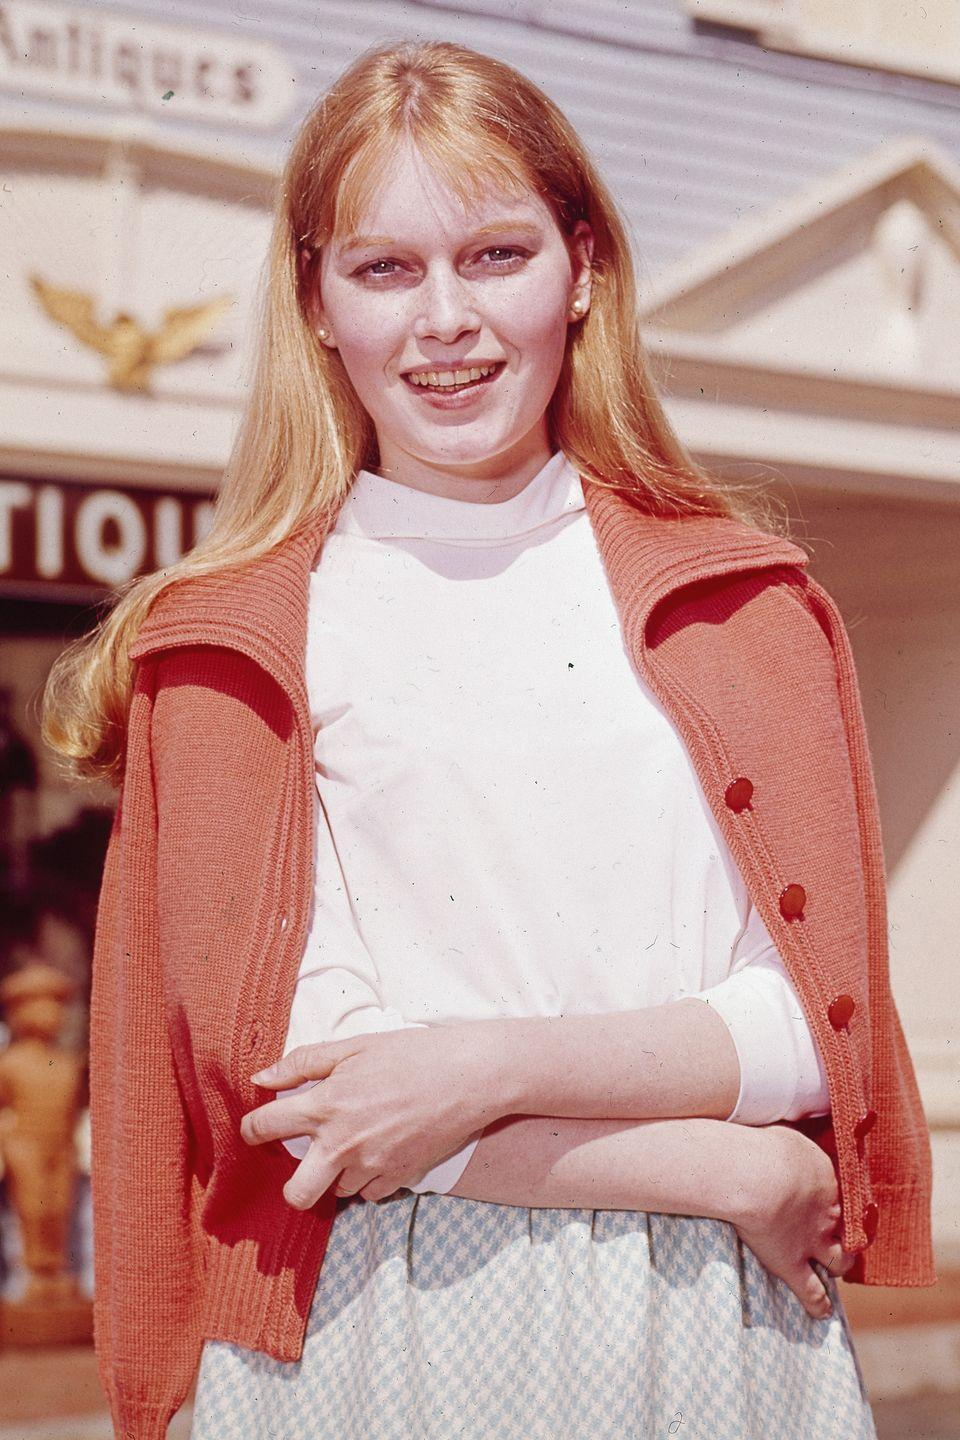 <p>Farrow's first major role was as Allison MacKenzie on the soap opera, <em>Peyton Place</em>. The drama, set in a small idyllic town, was TV's first prime time soap opera. The show ran for five seasons, but Farrow left after two years. </p>